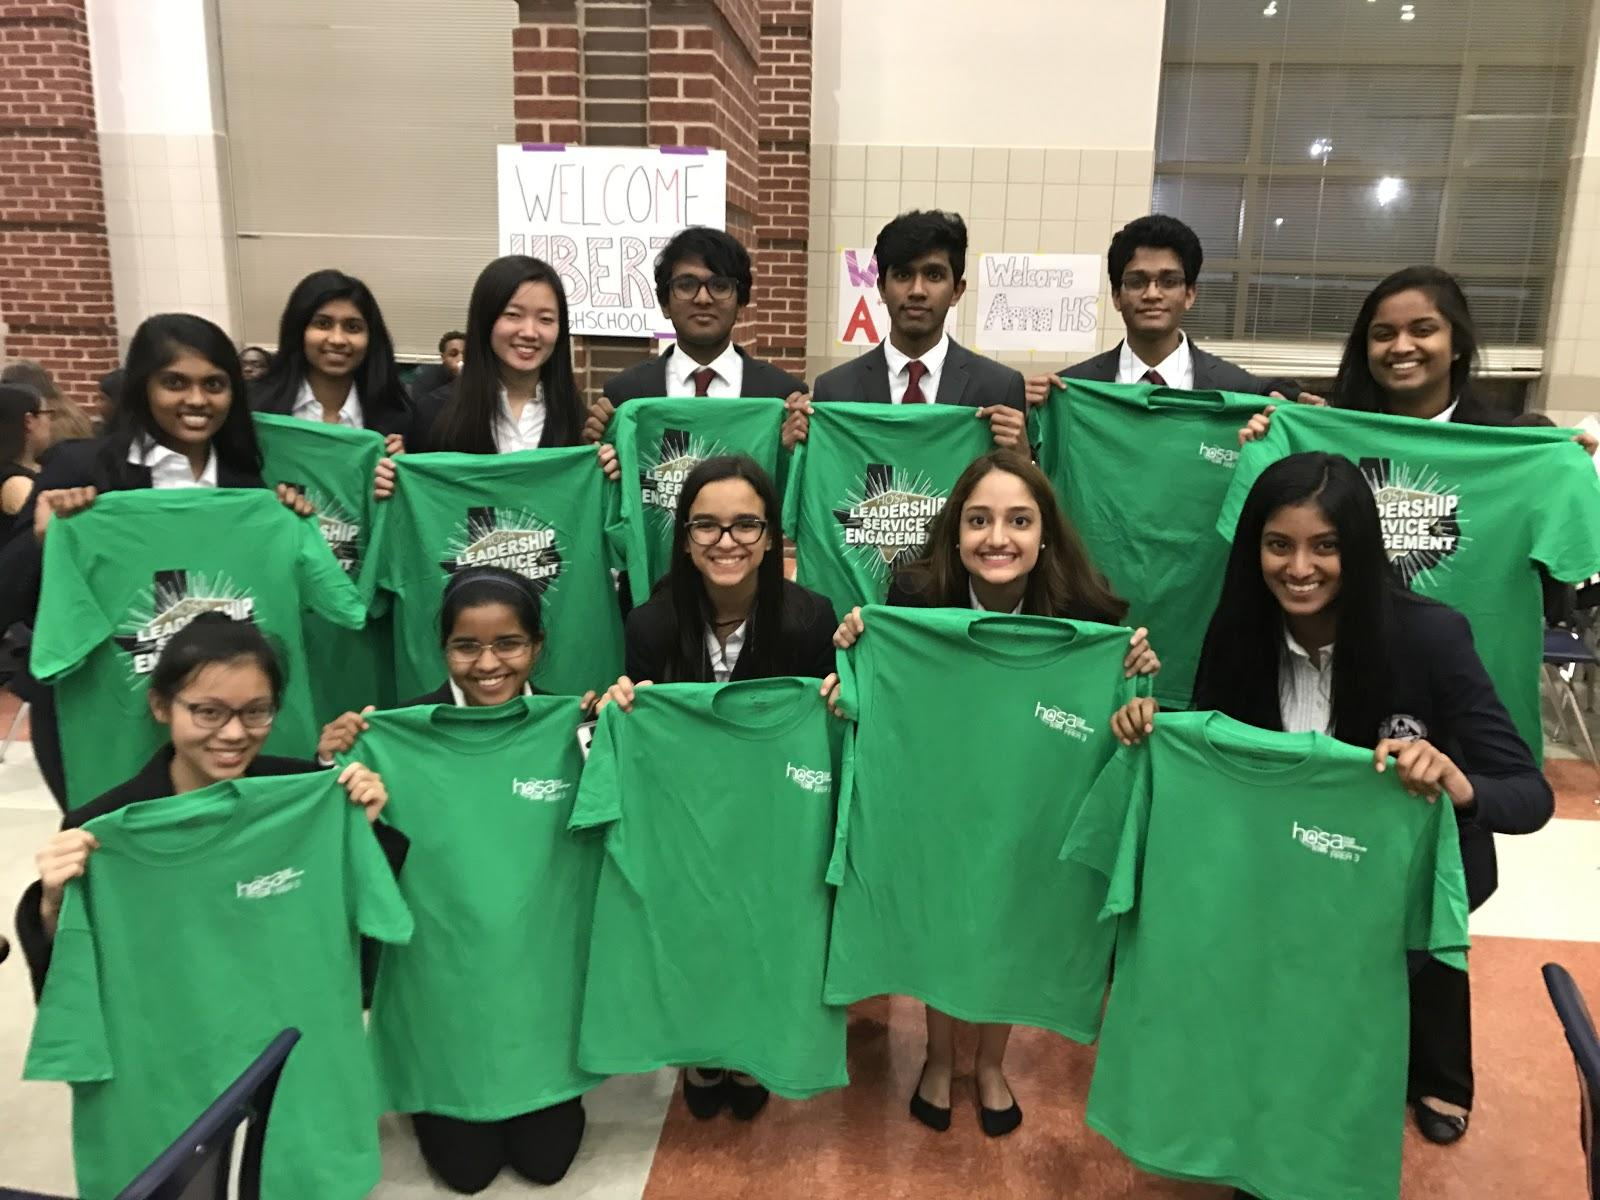 Health Occupational Students of America (HOSA) members stand with their T-shirts at the area competition on Feb. 17 and 18 at Centennial High School Frisco. 93 Coppell High School students participated and around 20 advanced to the state competition, which will be held in Corpus Christi from March 31 to April 1.